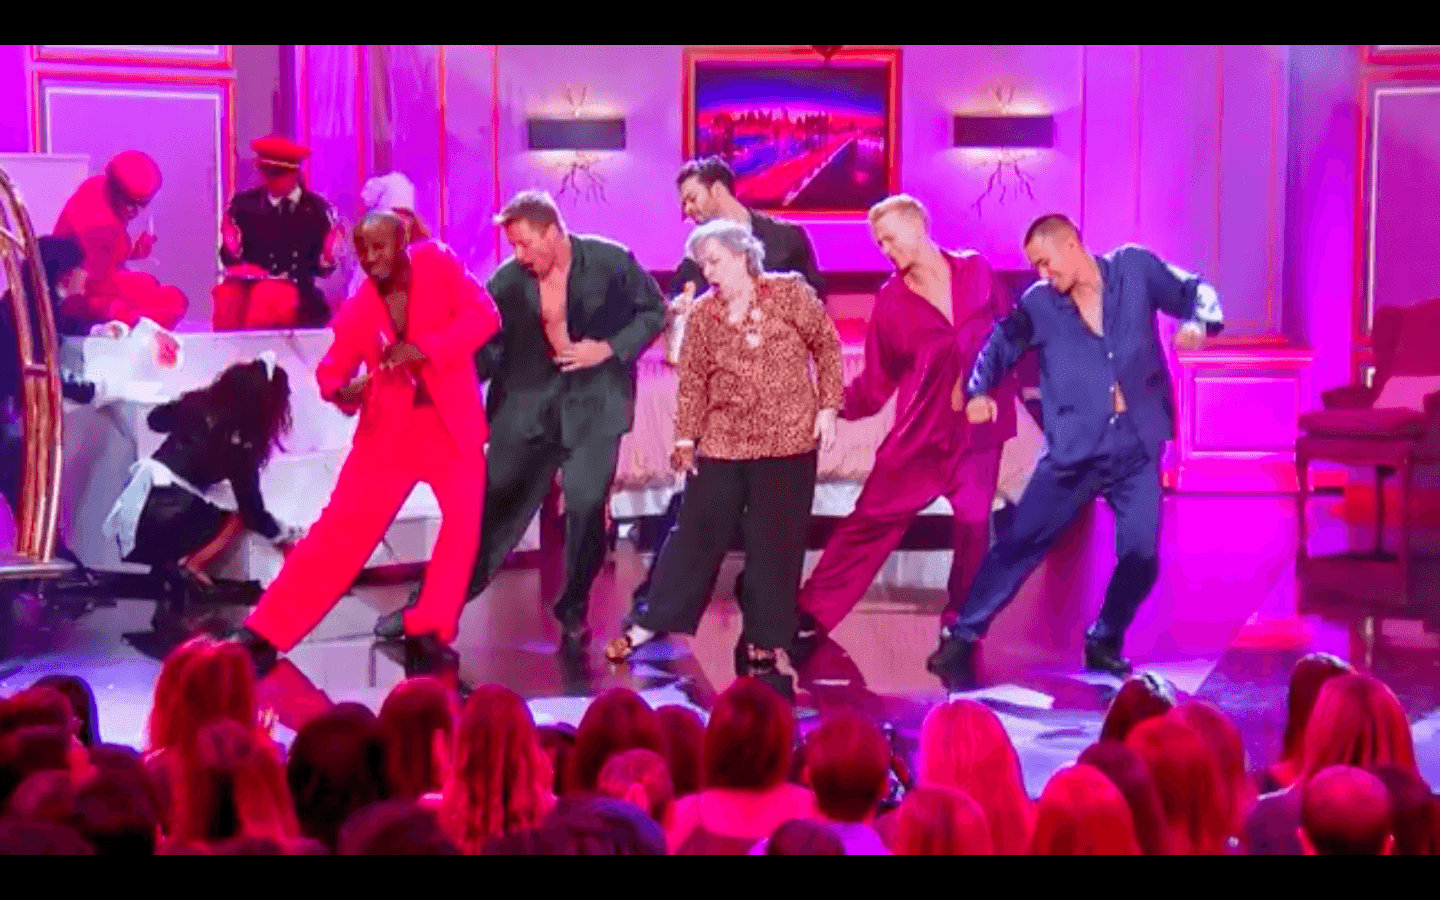 The 70-year-old Bates impresses with her dance moves. Image credit: Facebook/Lip Sync Battle.